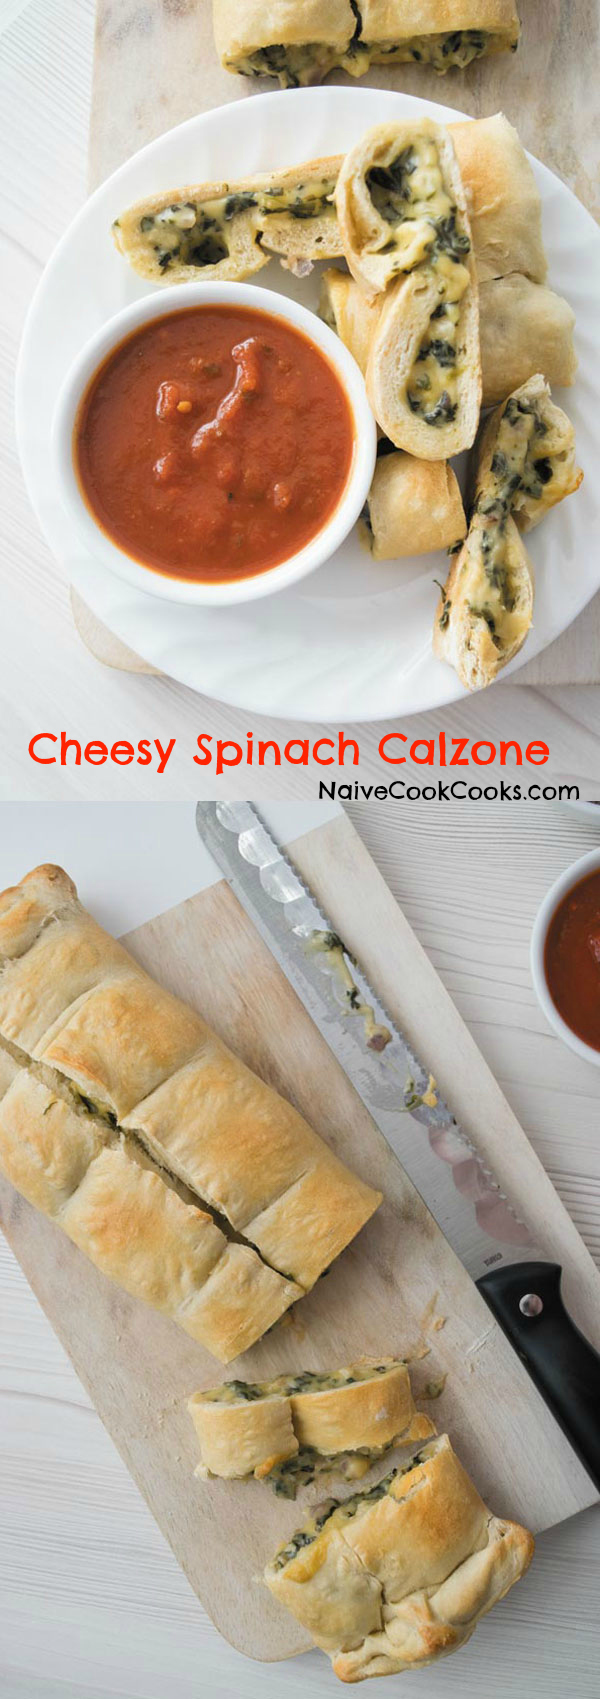 cheesy spinach calzones 1